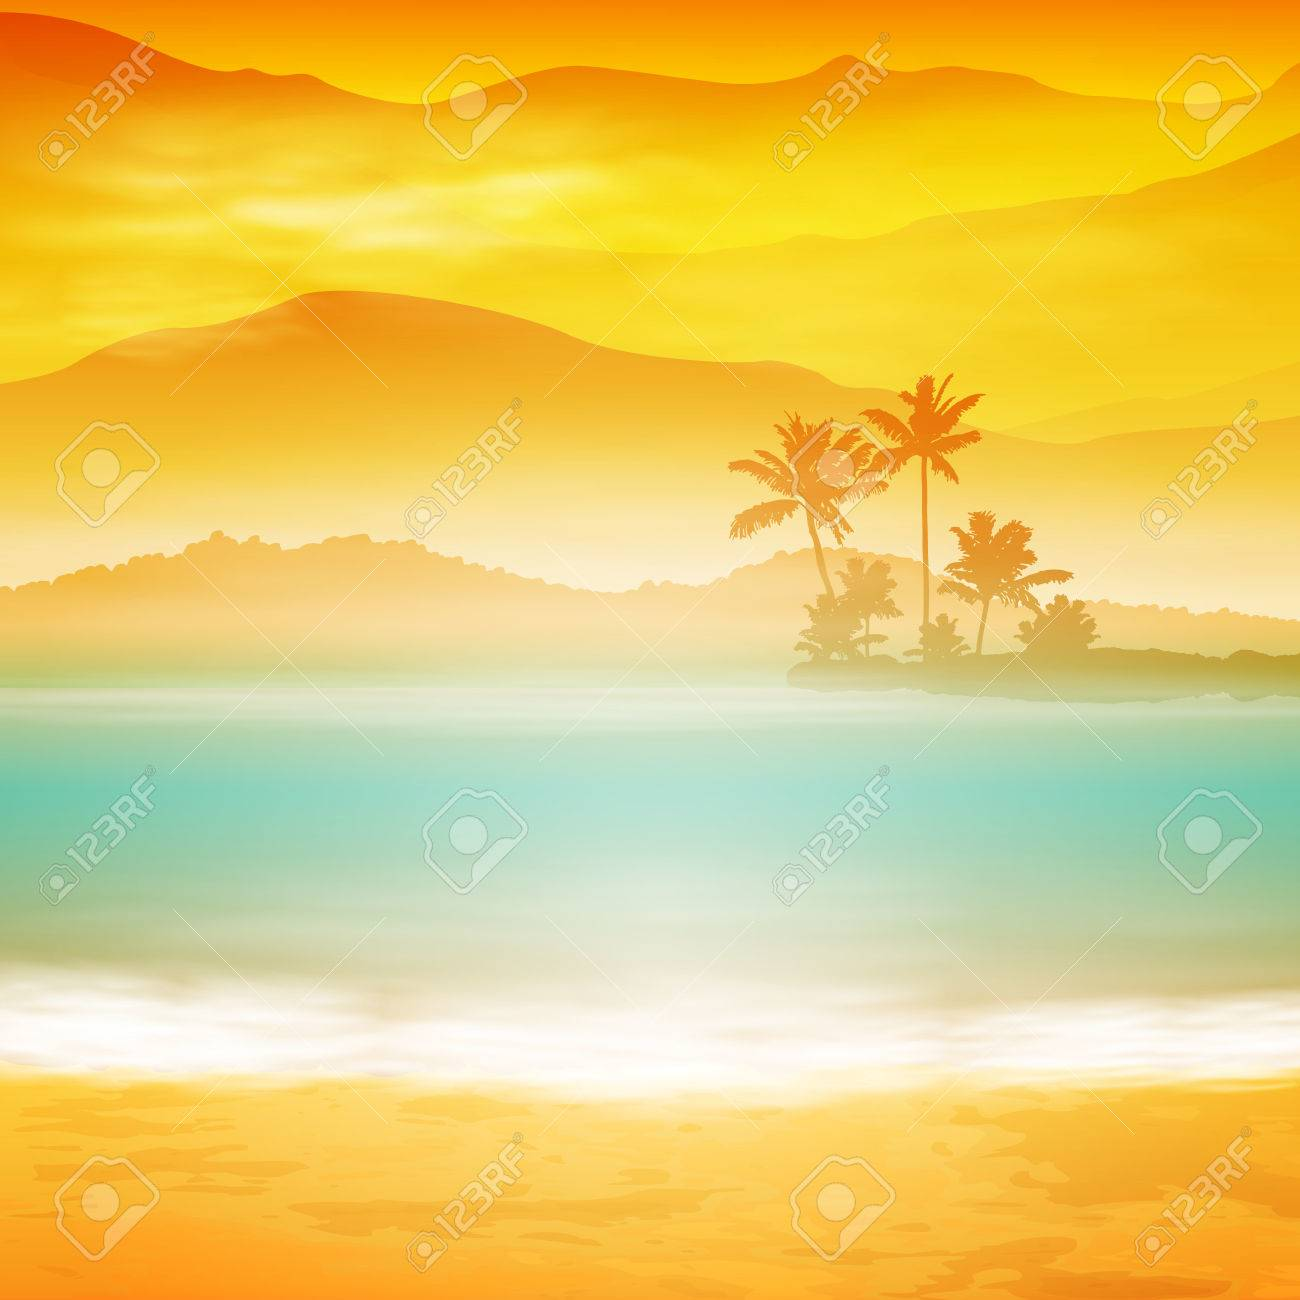 Background with sea and palm trees. Sunset time. - 31785704